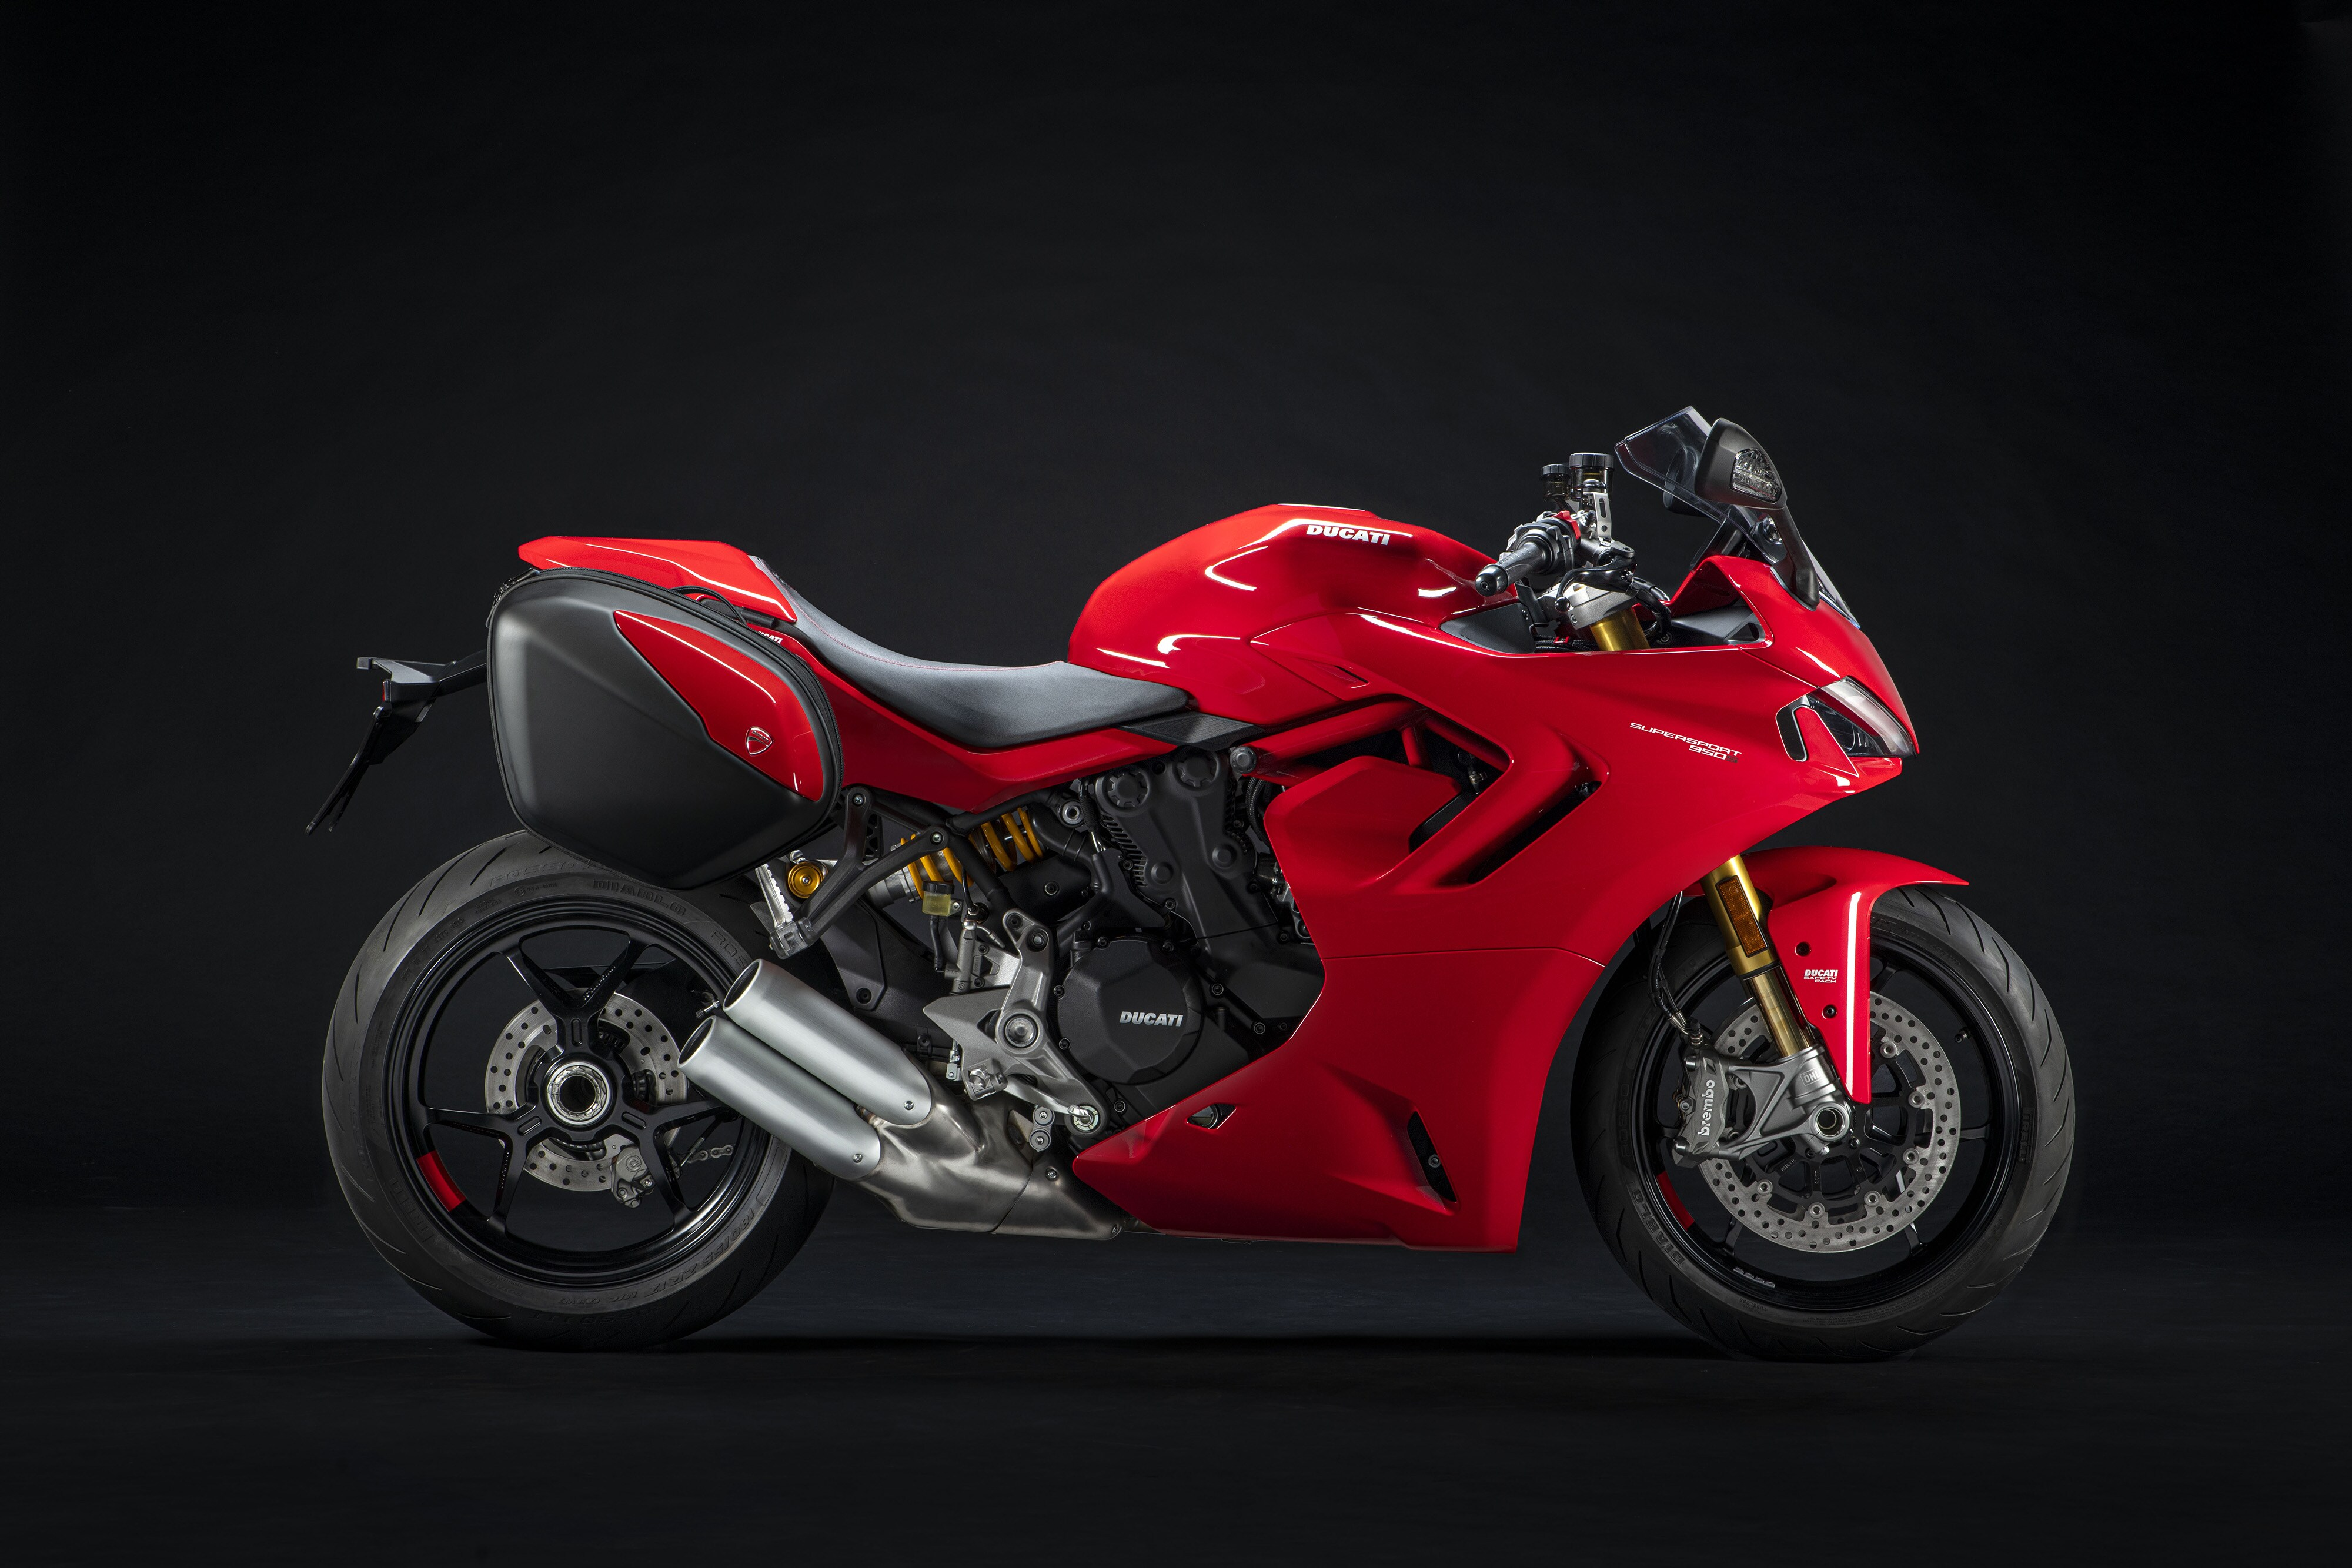 The new SuperSport 950 has been introduced in India in two variants – Standard and S.